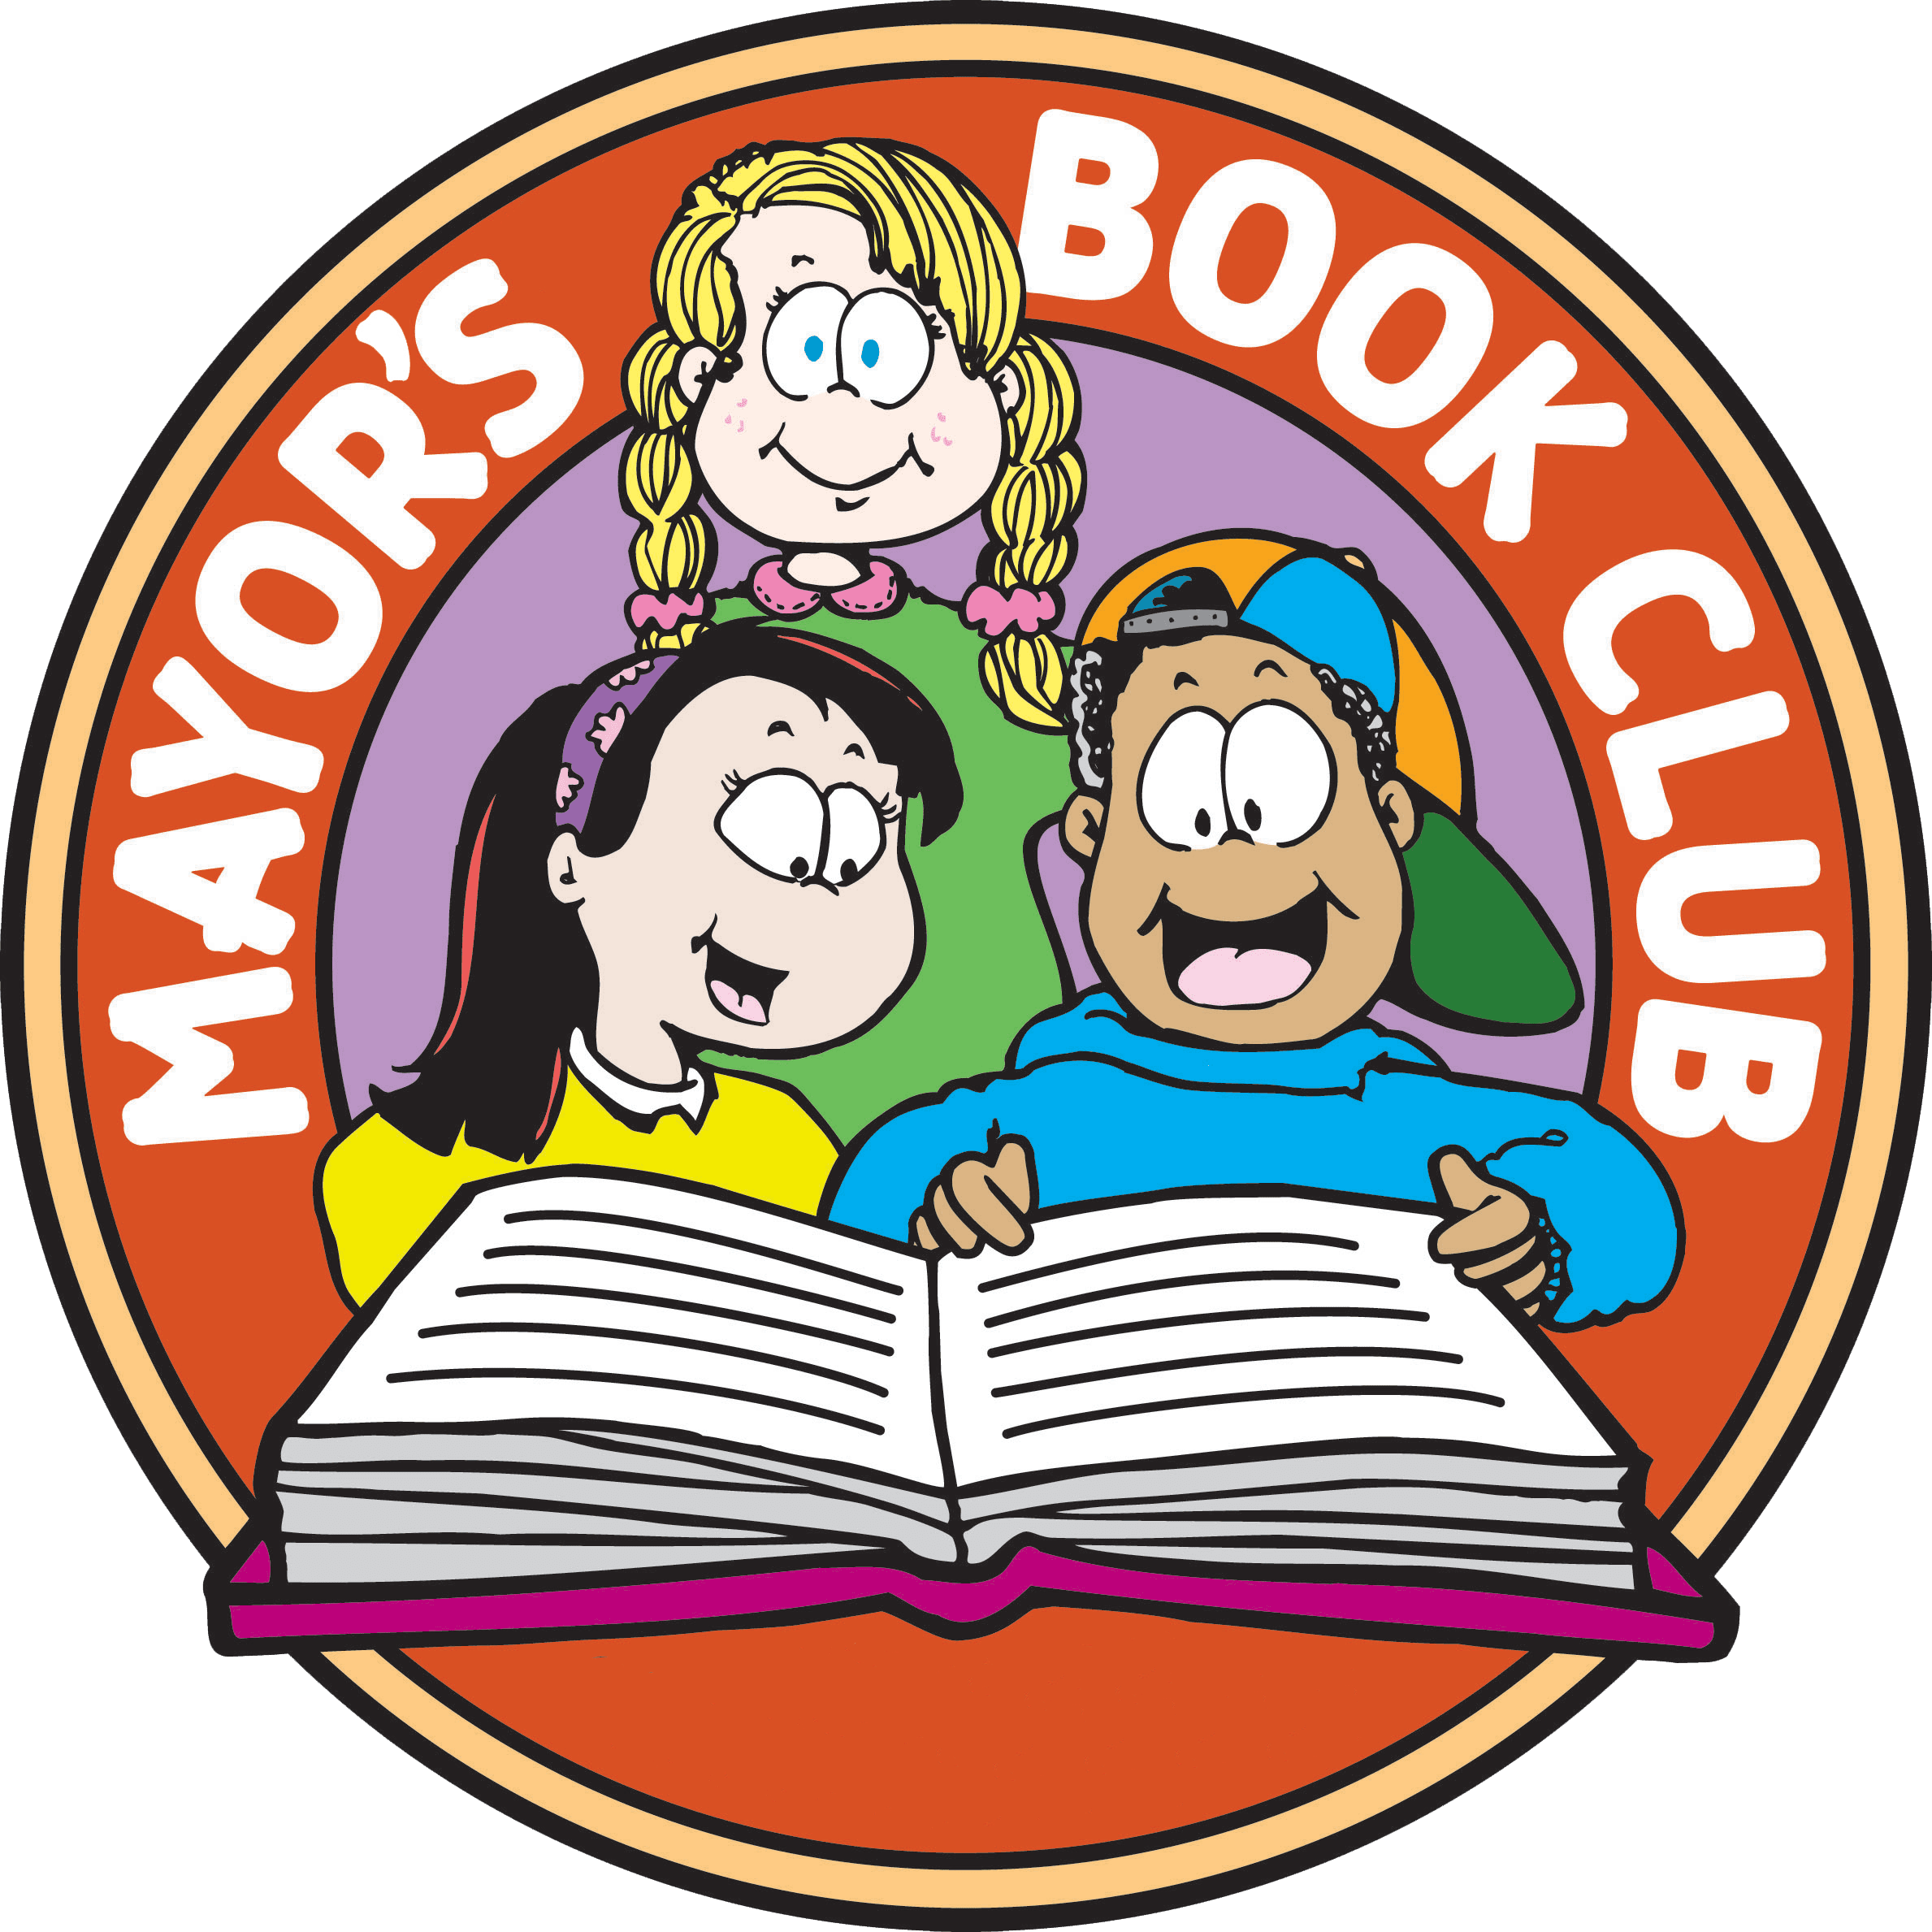 Mayors Book Club